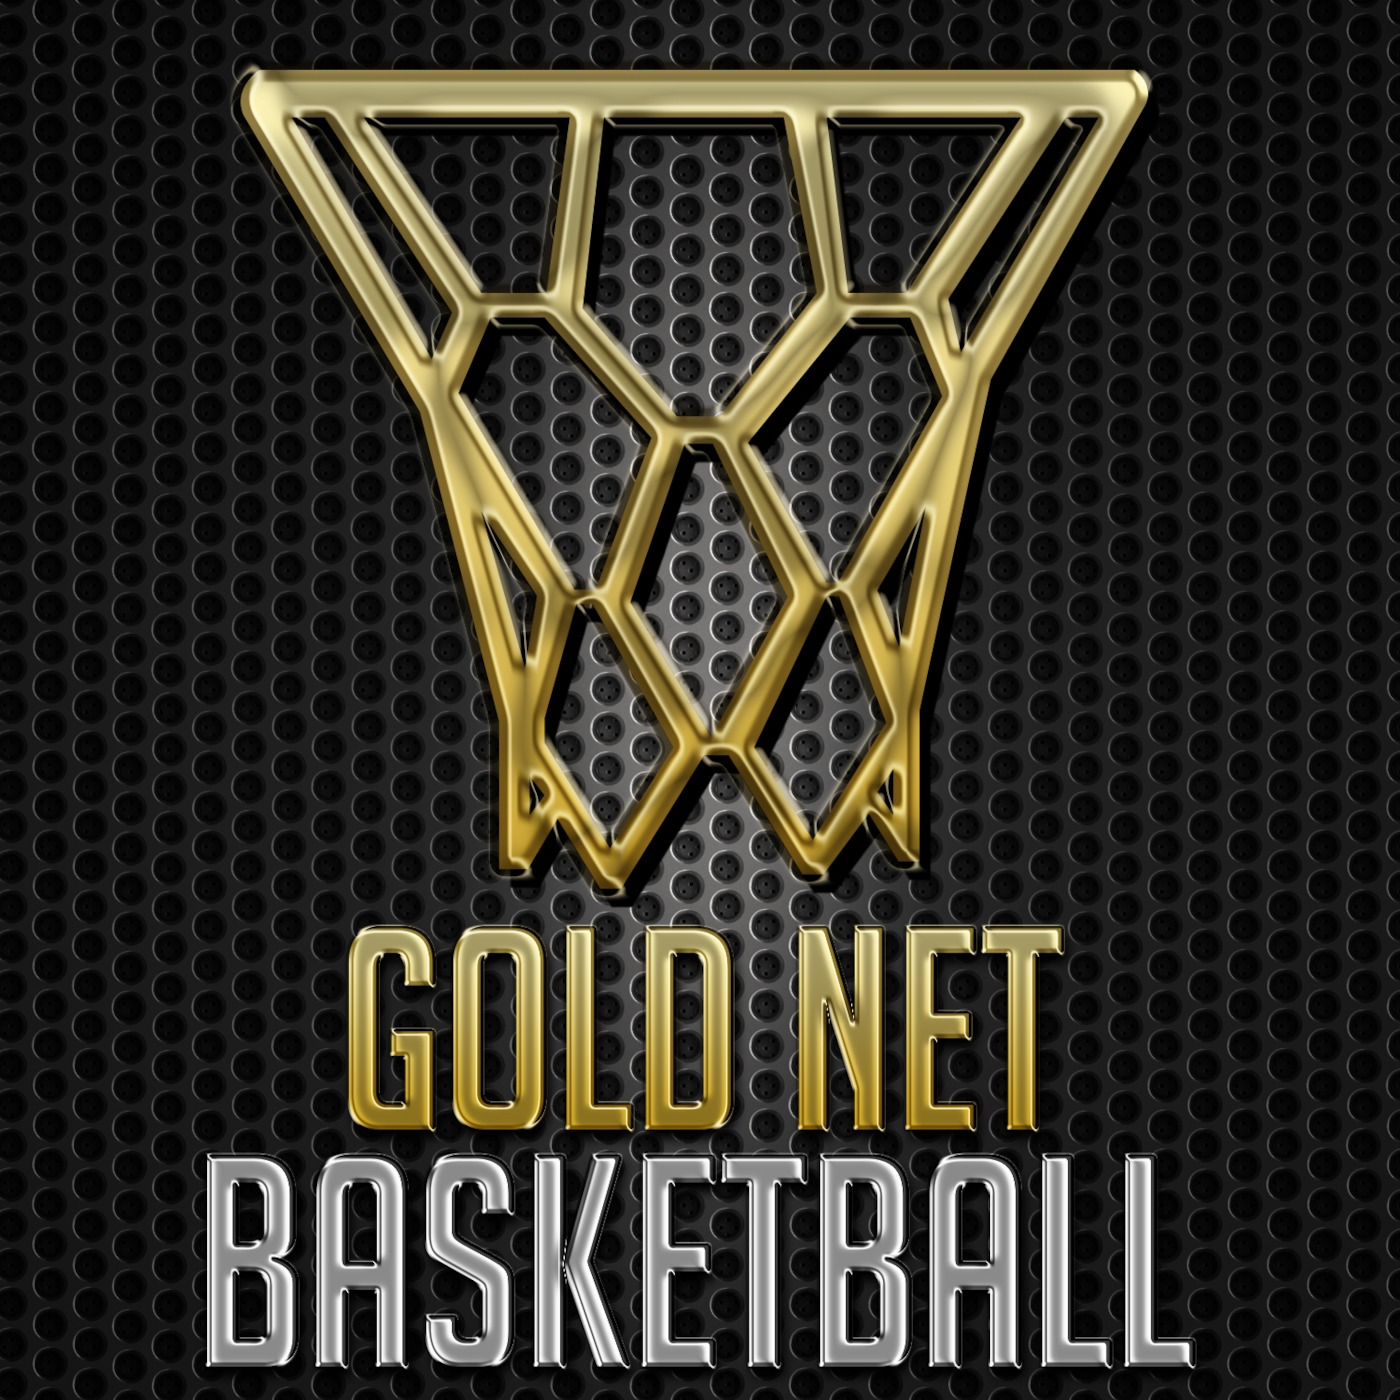 Gold Net Basketball Podcast